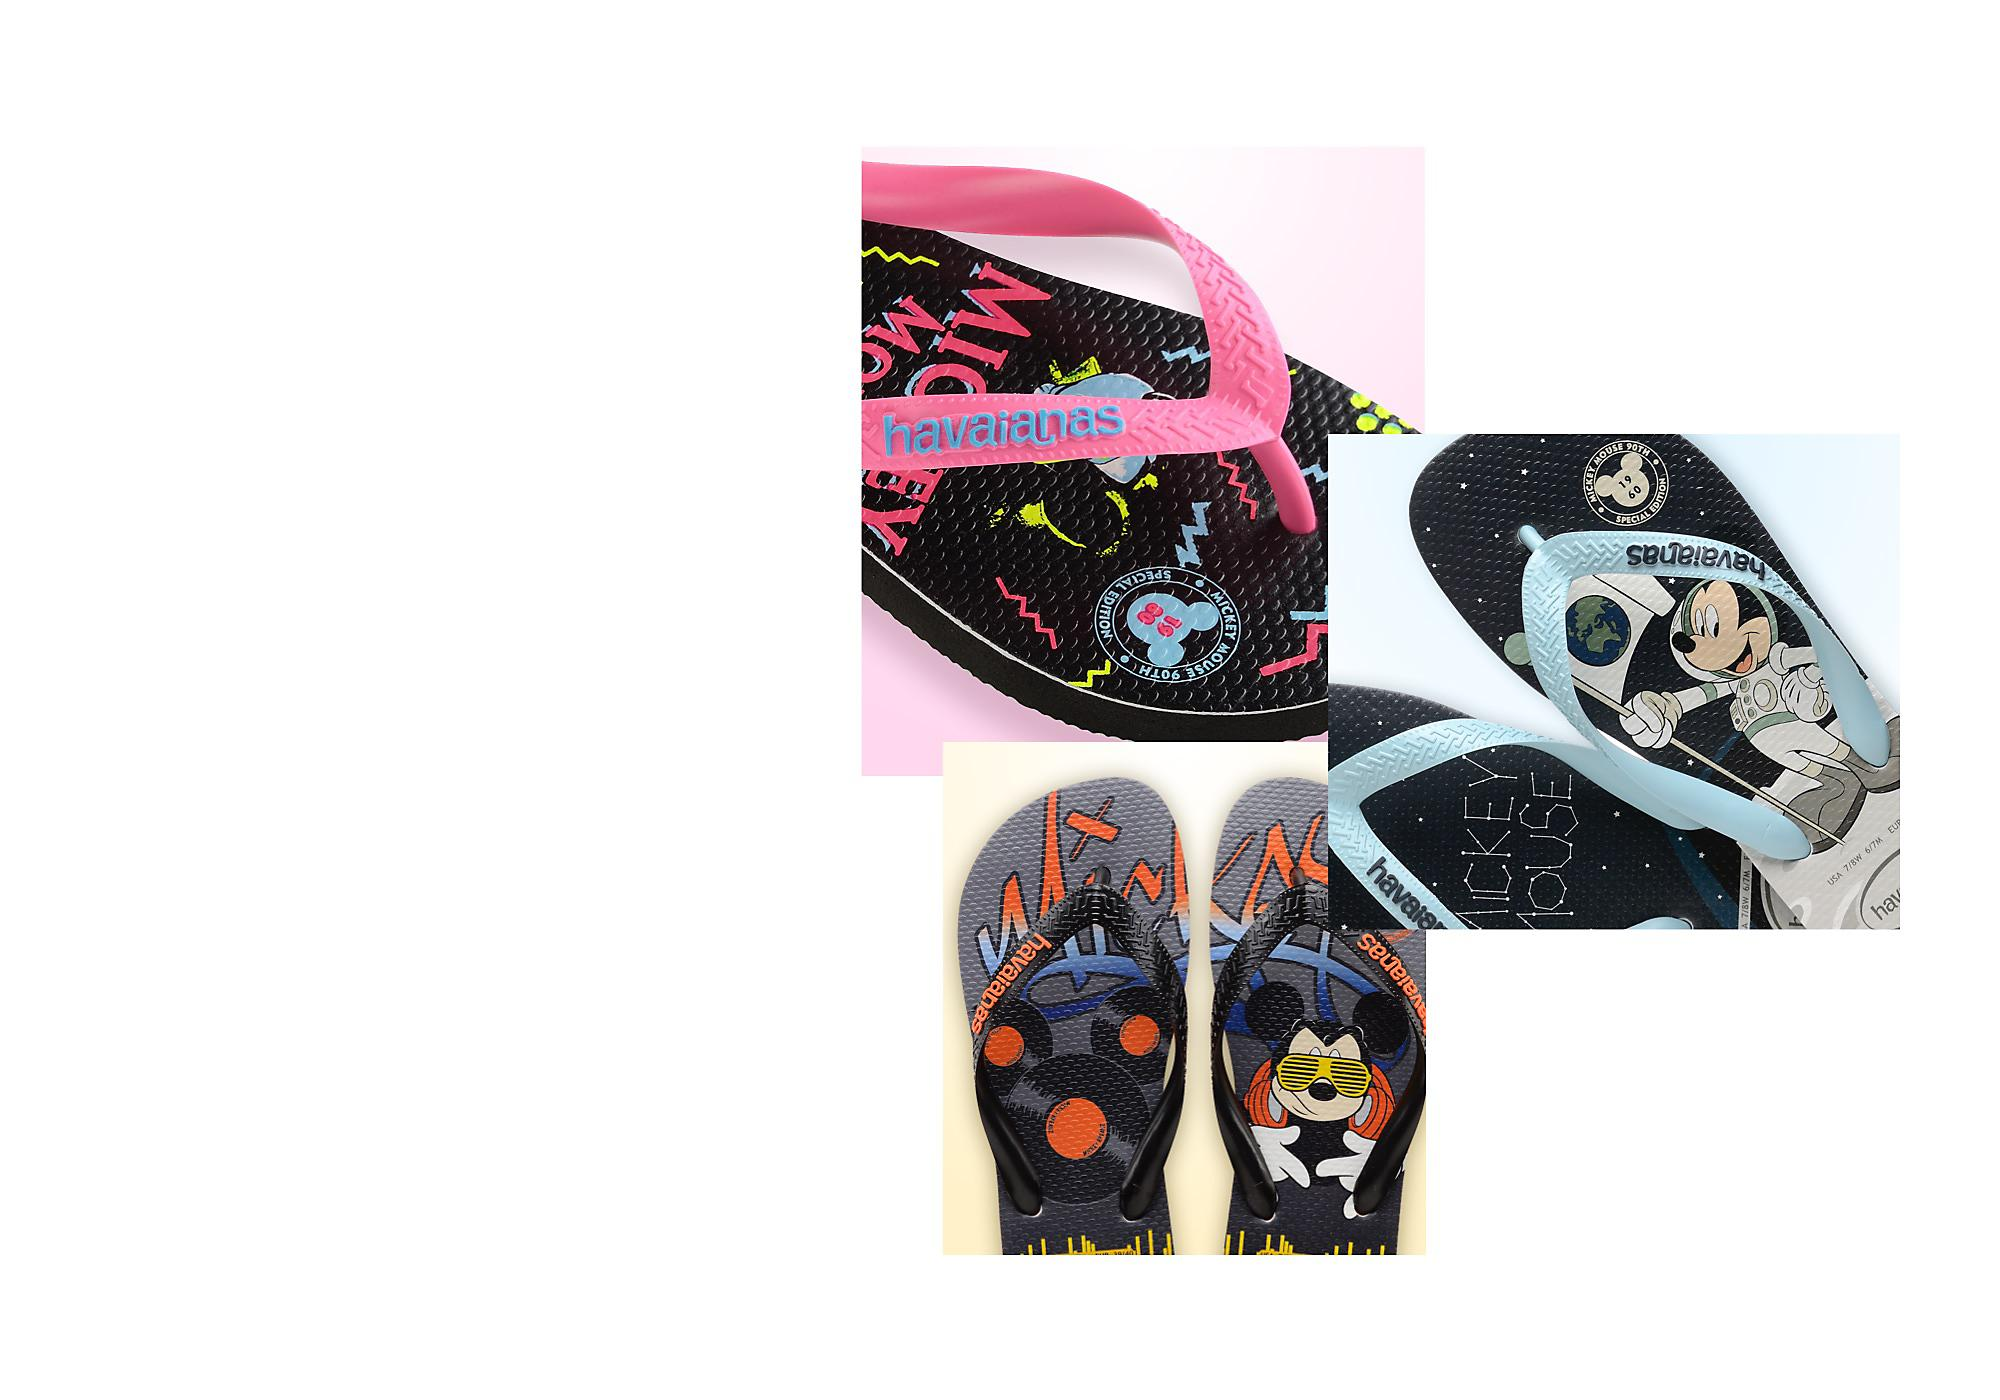 Chilled Out Footwear Combining Brazilian style and Disney artwork make the perfect flip flops